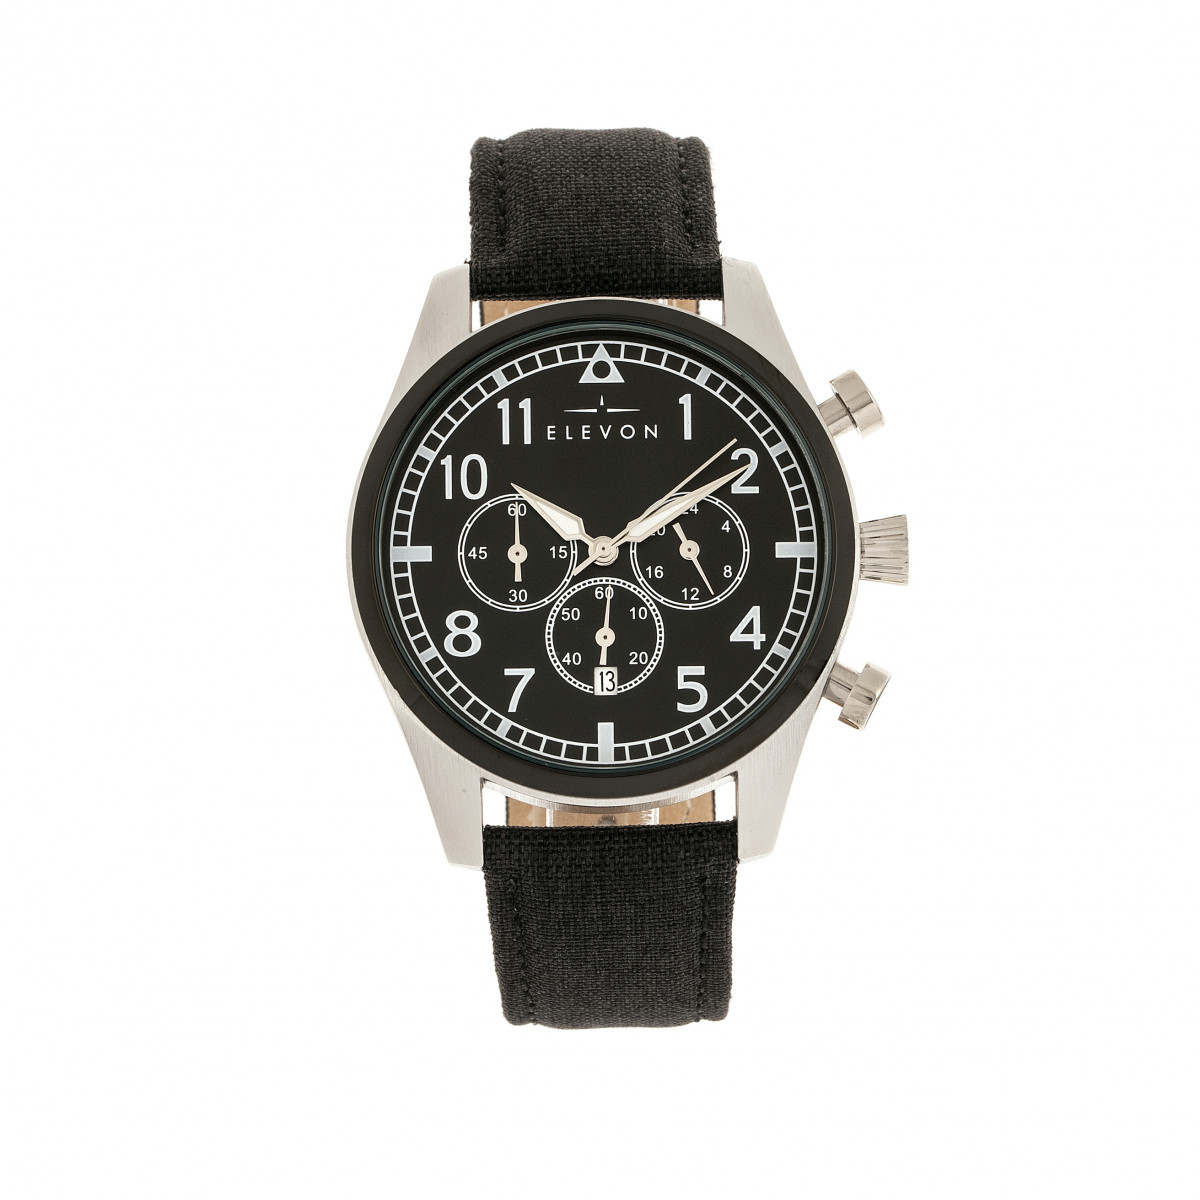 7f5e42f3a Elevon Elevon Curtiss Leather-Band Watch   Up to 60% Off w/ Free S&H